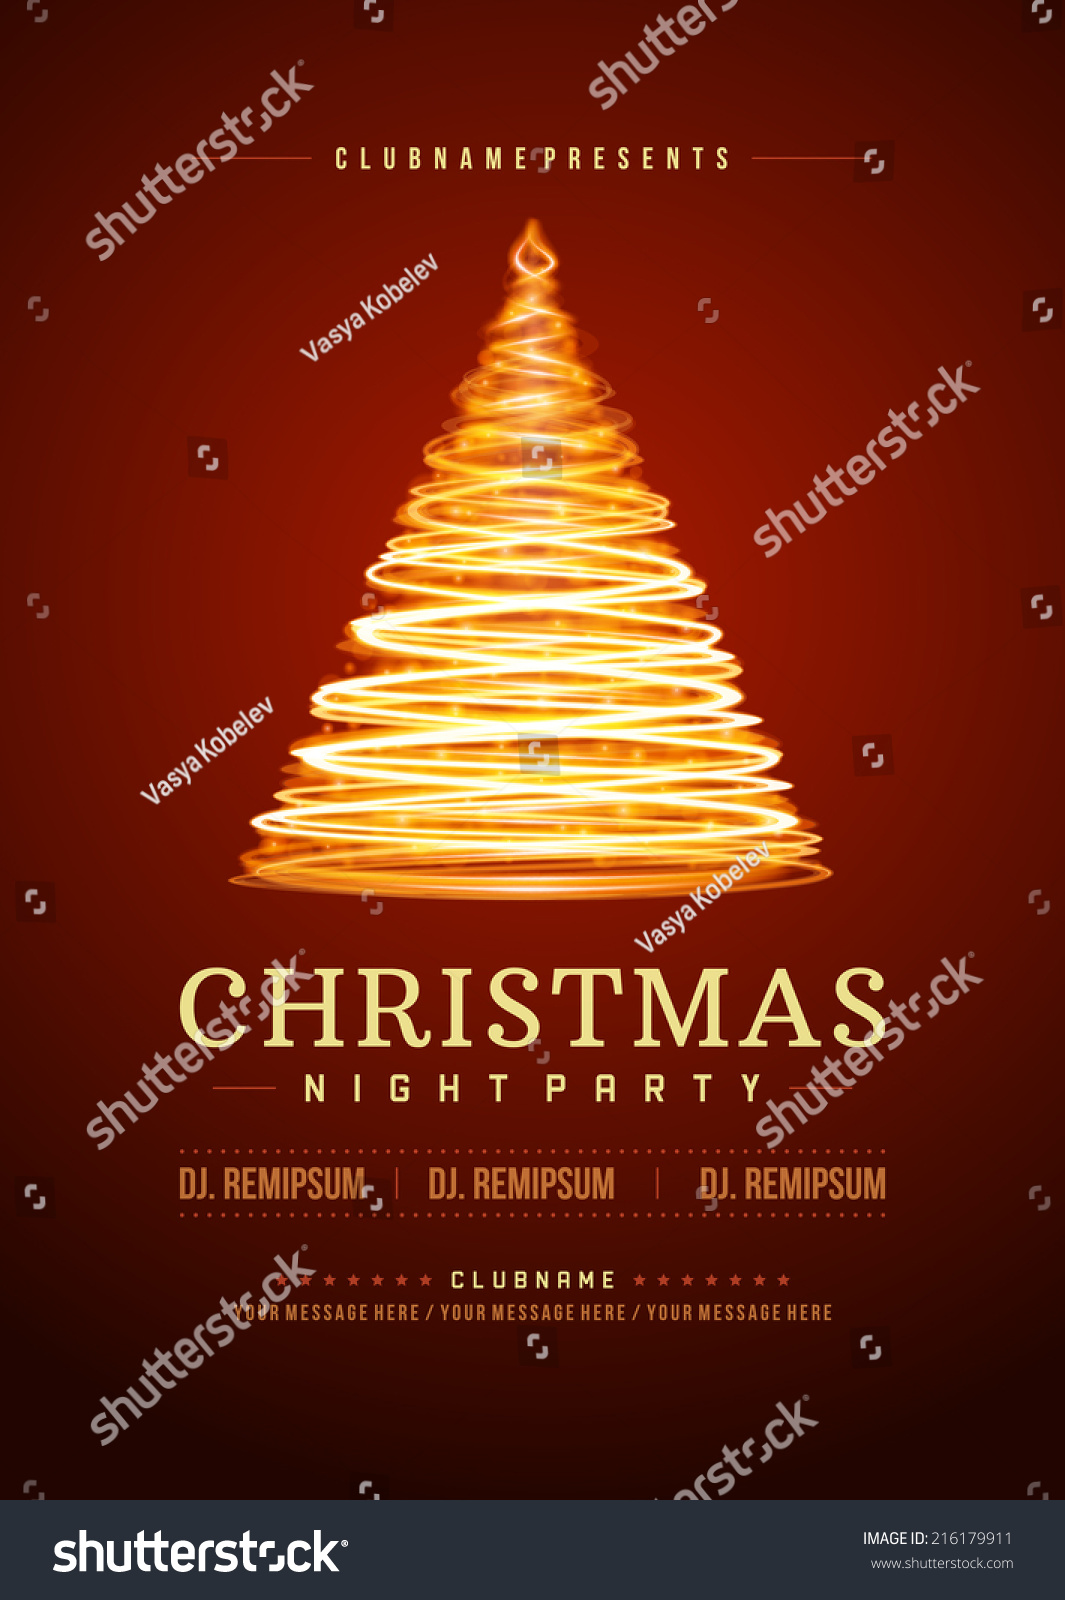 christmas party invitation retro typography or nt stock vector christmas party invitation retro typography and or nt decoration christmas holidays flyer or poster design